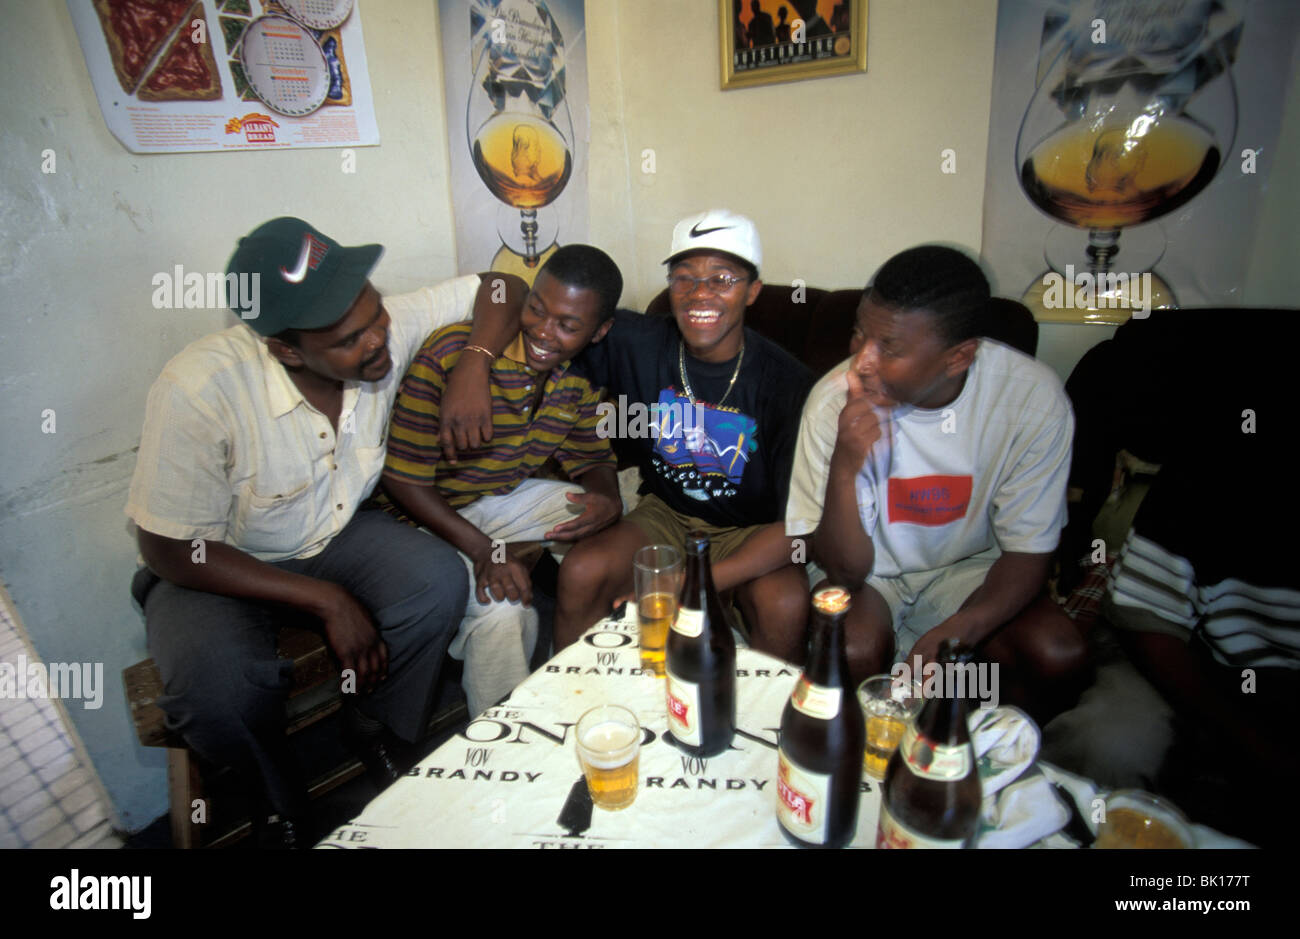 South Africa, township, illegal drinking in a shebeen - Stock Image